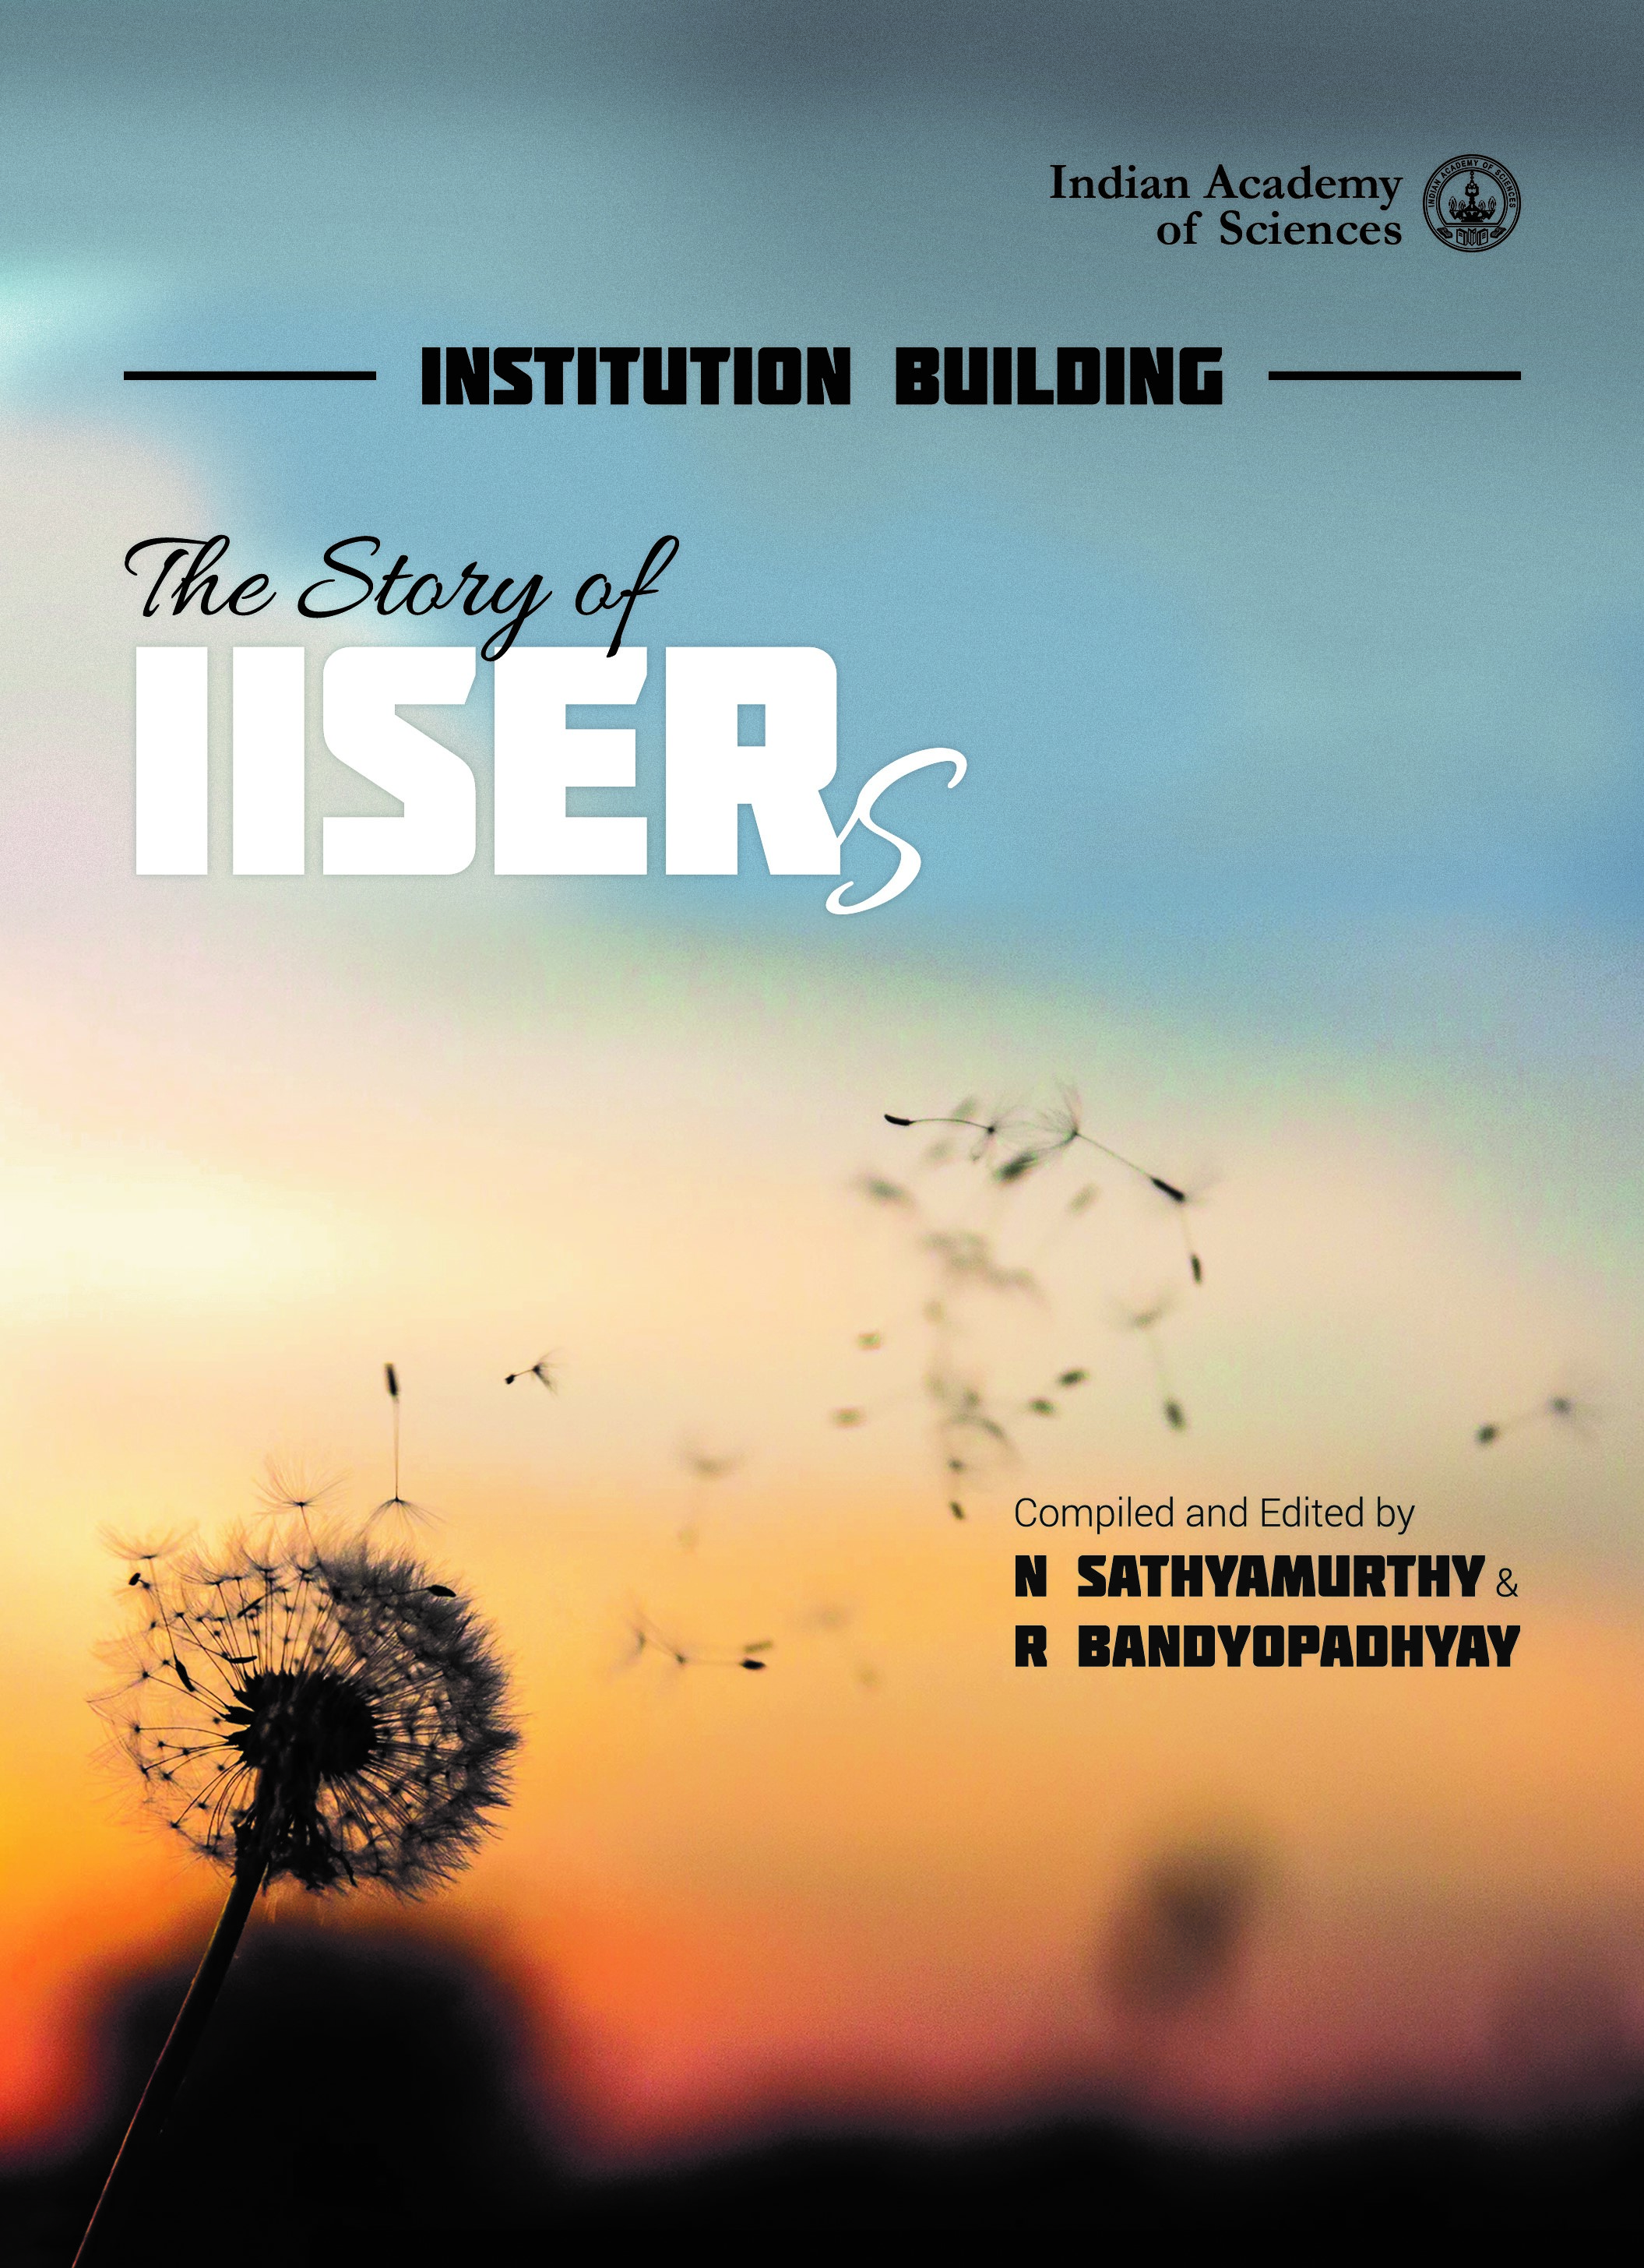 Institution Building: The Story of IISERs